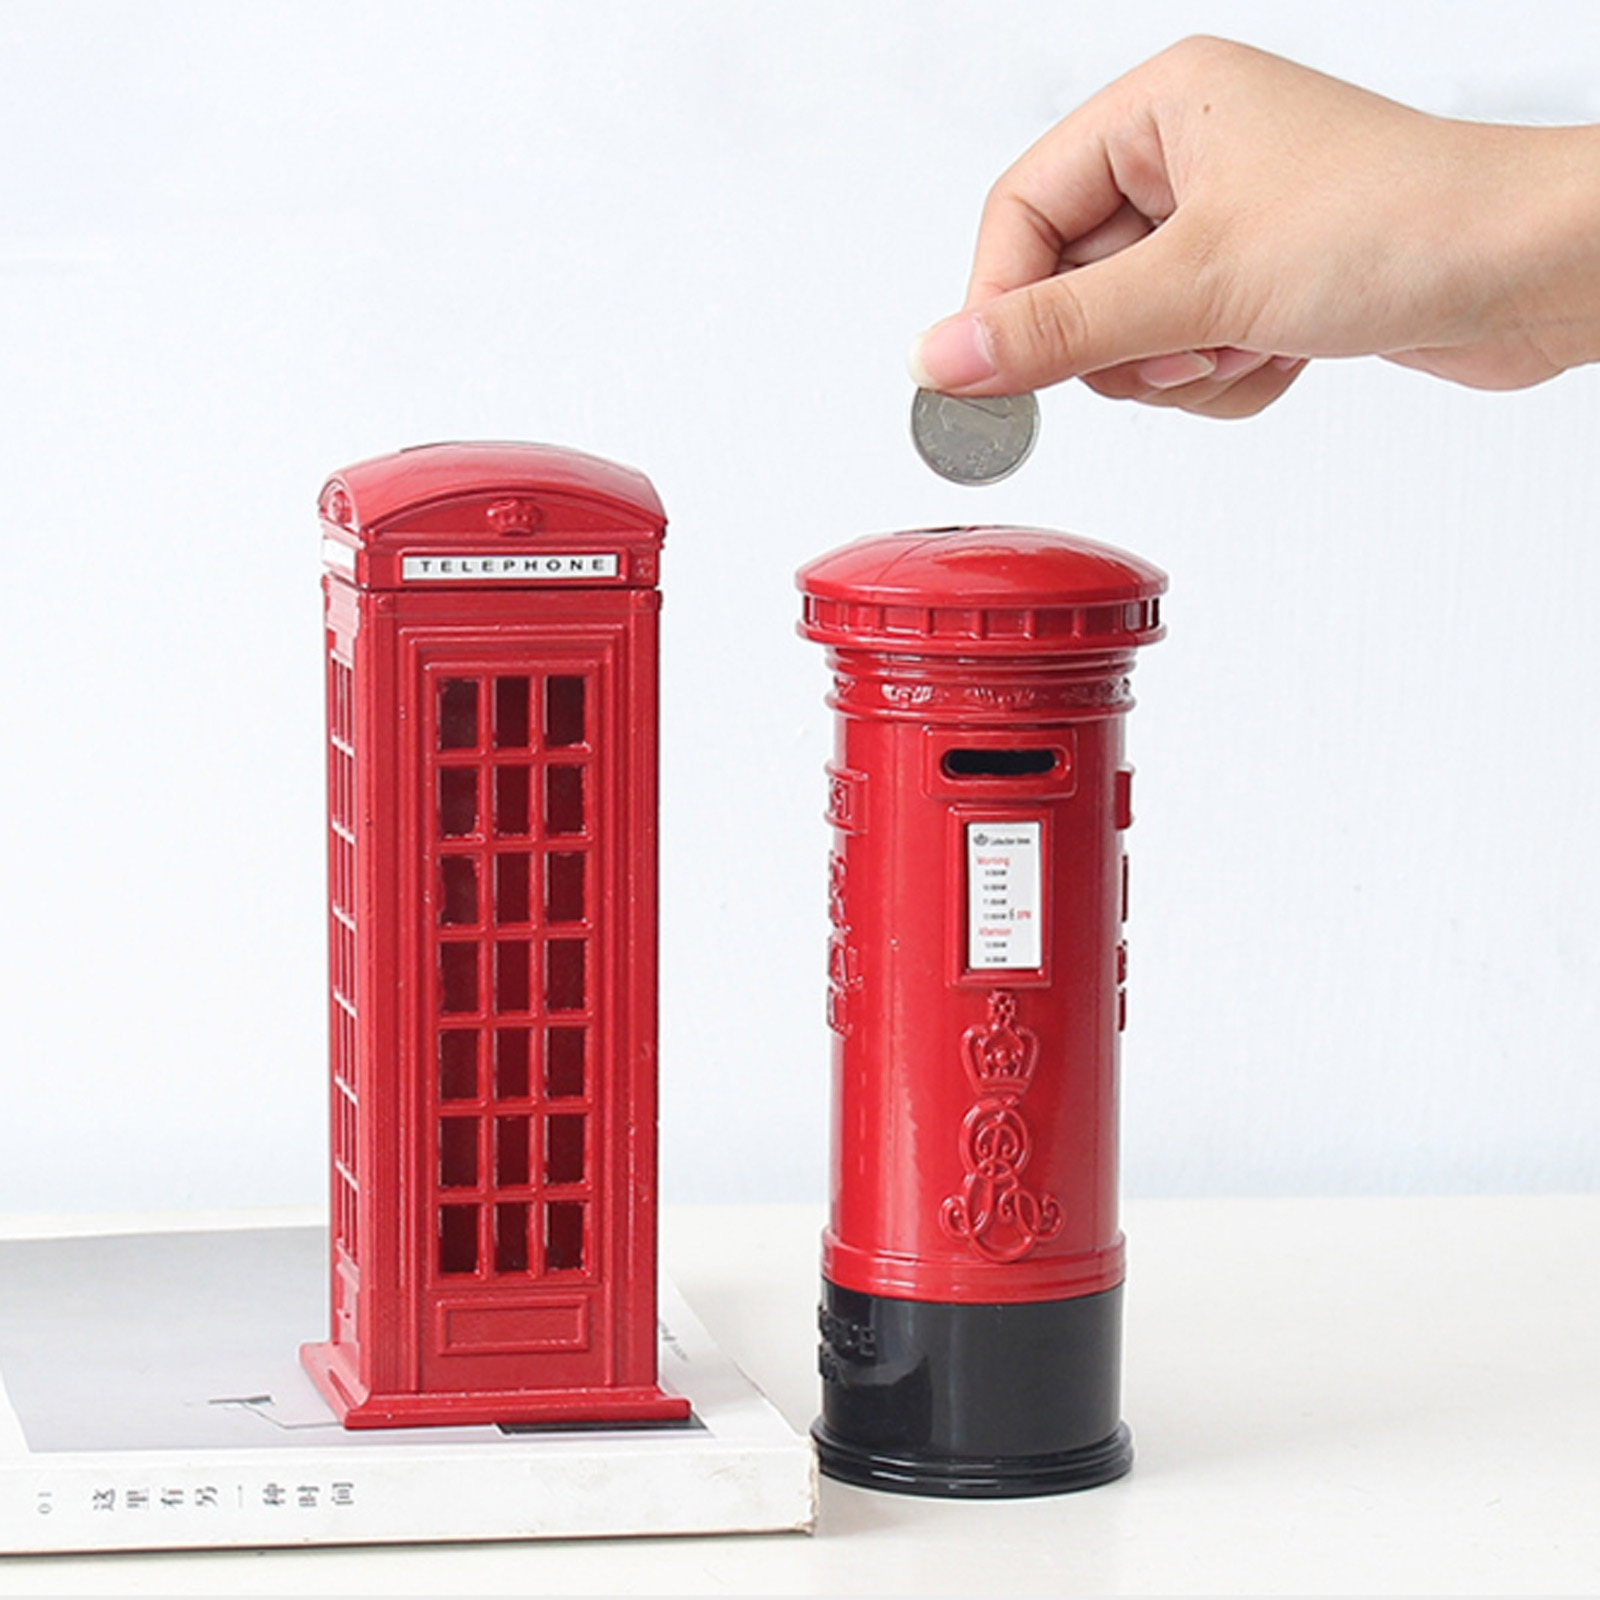 Metal Red British English London Telephone Booth Bank Coin Saving Pot Piggy Phone Box  6x6x18cm